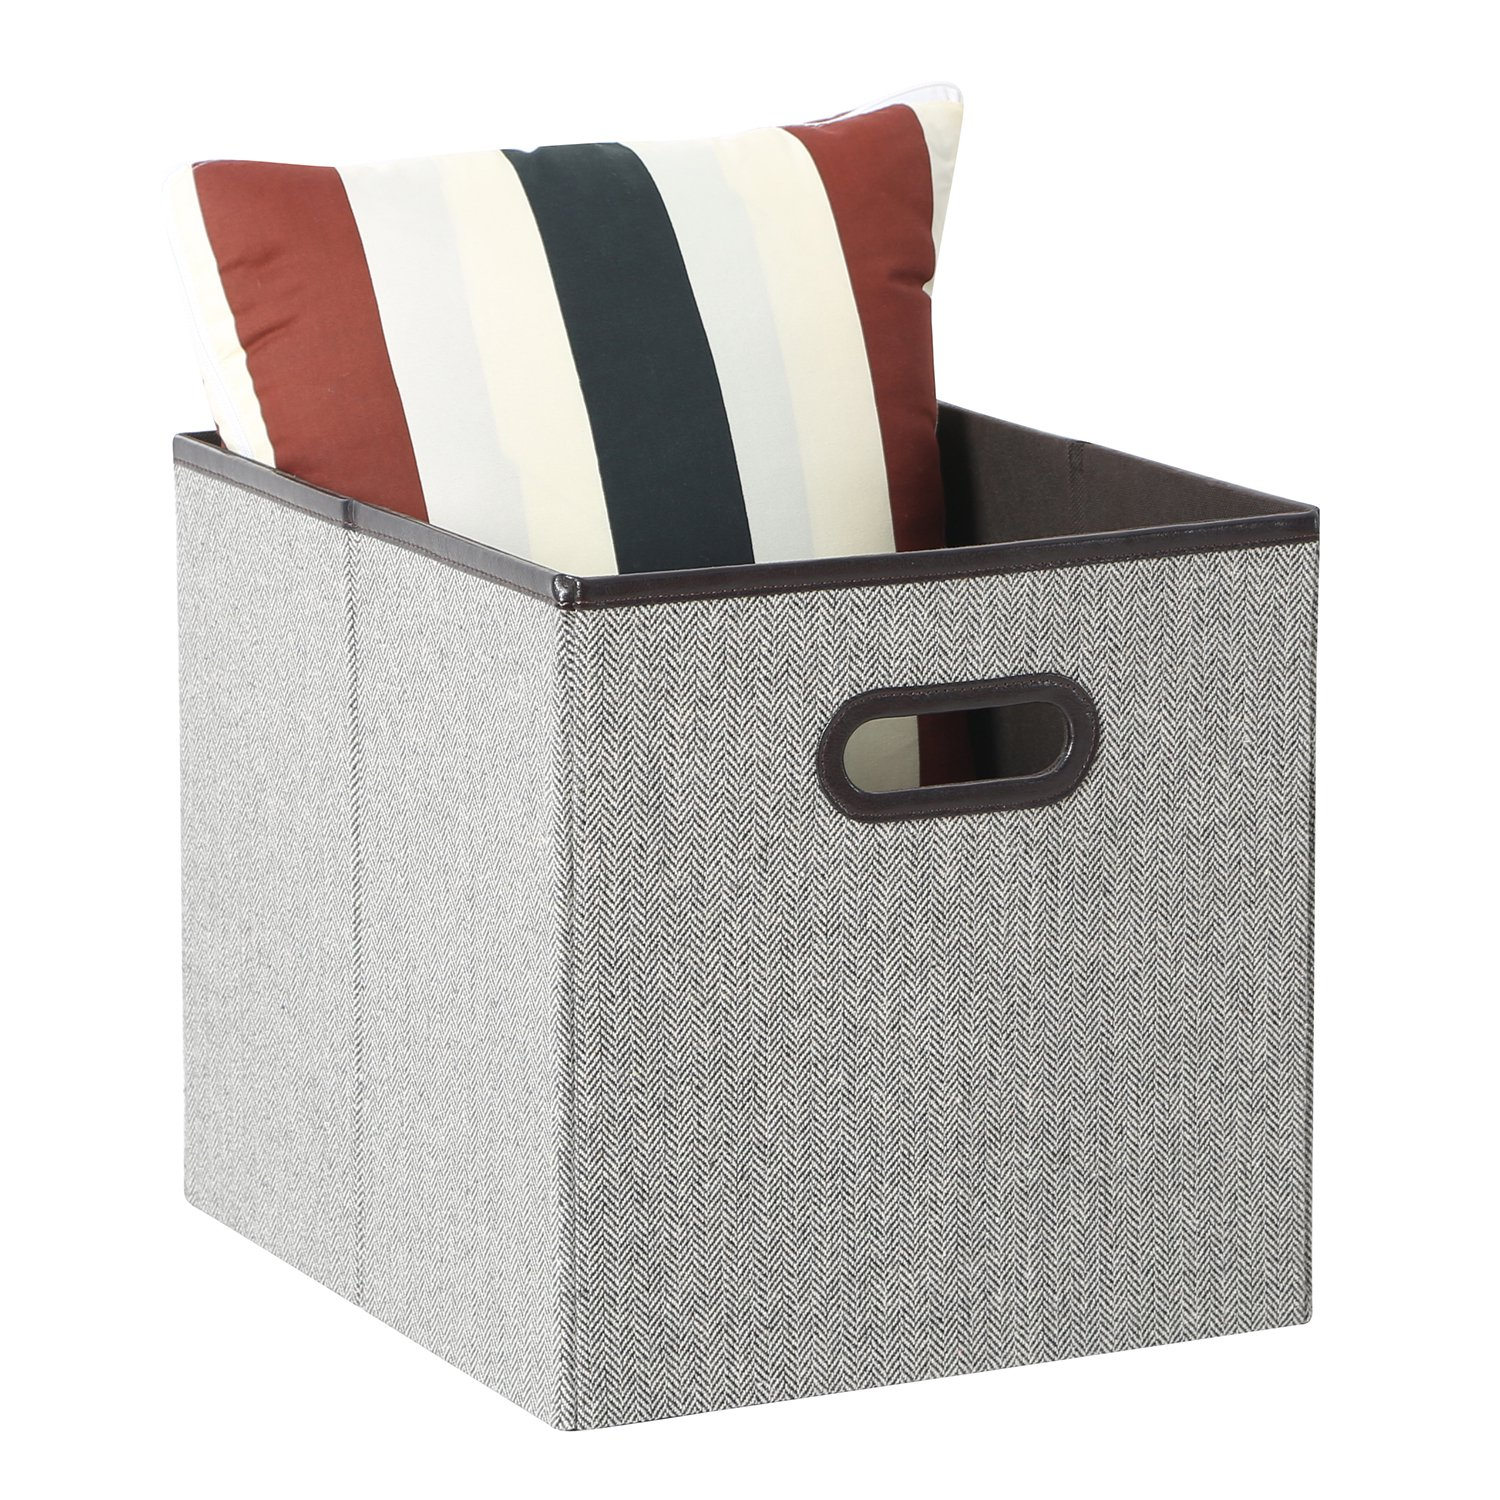 Tidy Living   Fabric Bin Faux Leather Accent Foldable Storage Organizer  Large